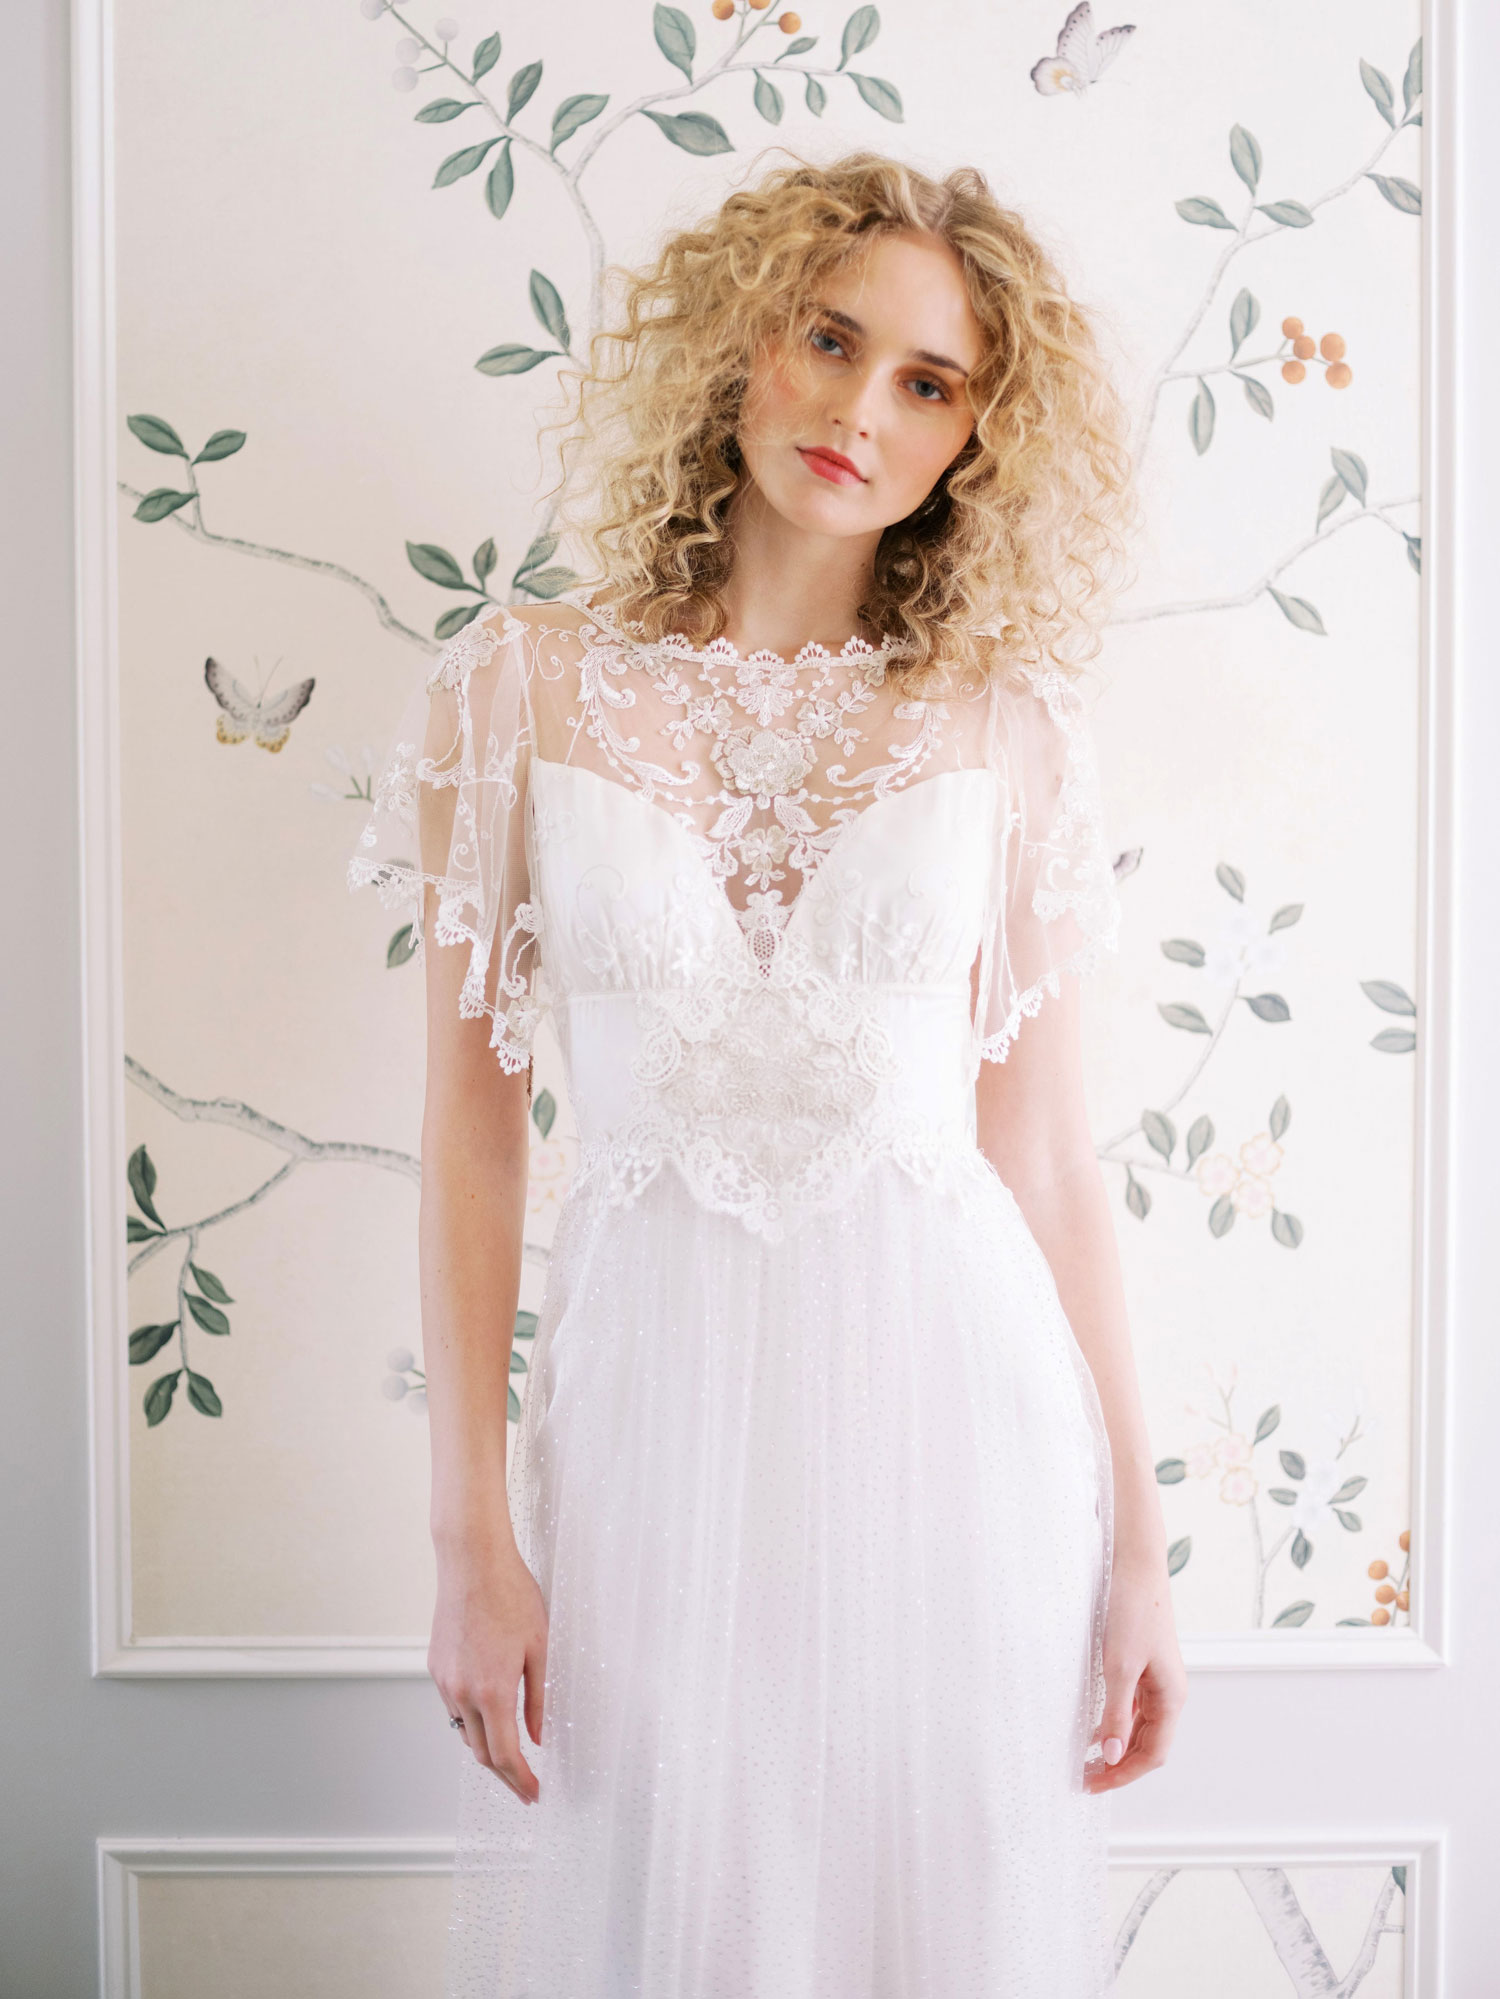 Claire Pettibone Evolution 2020 bridal collection Dawn wedding dress sheer overlay bodice